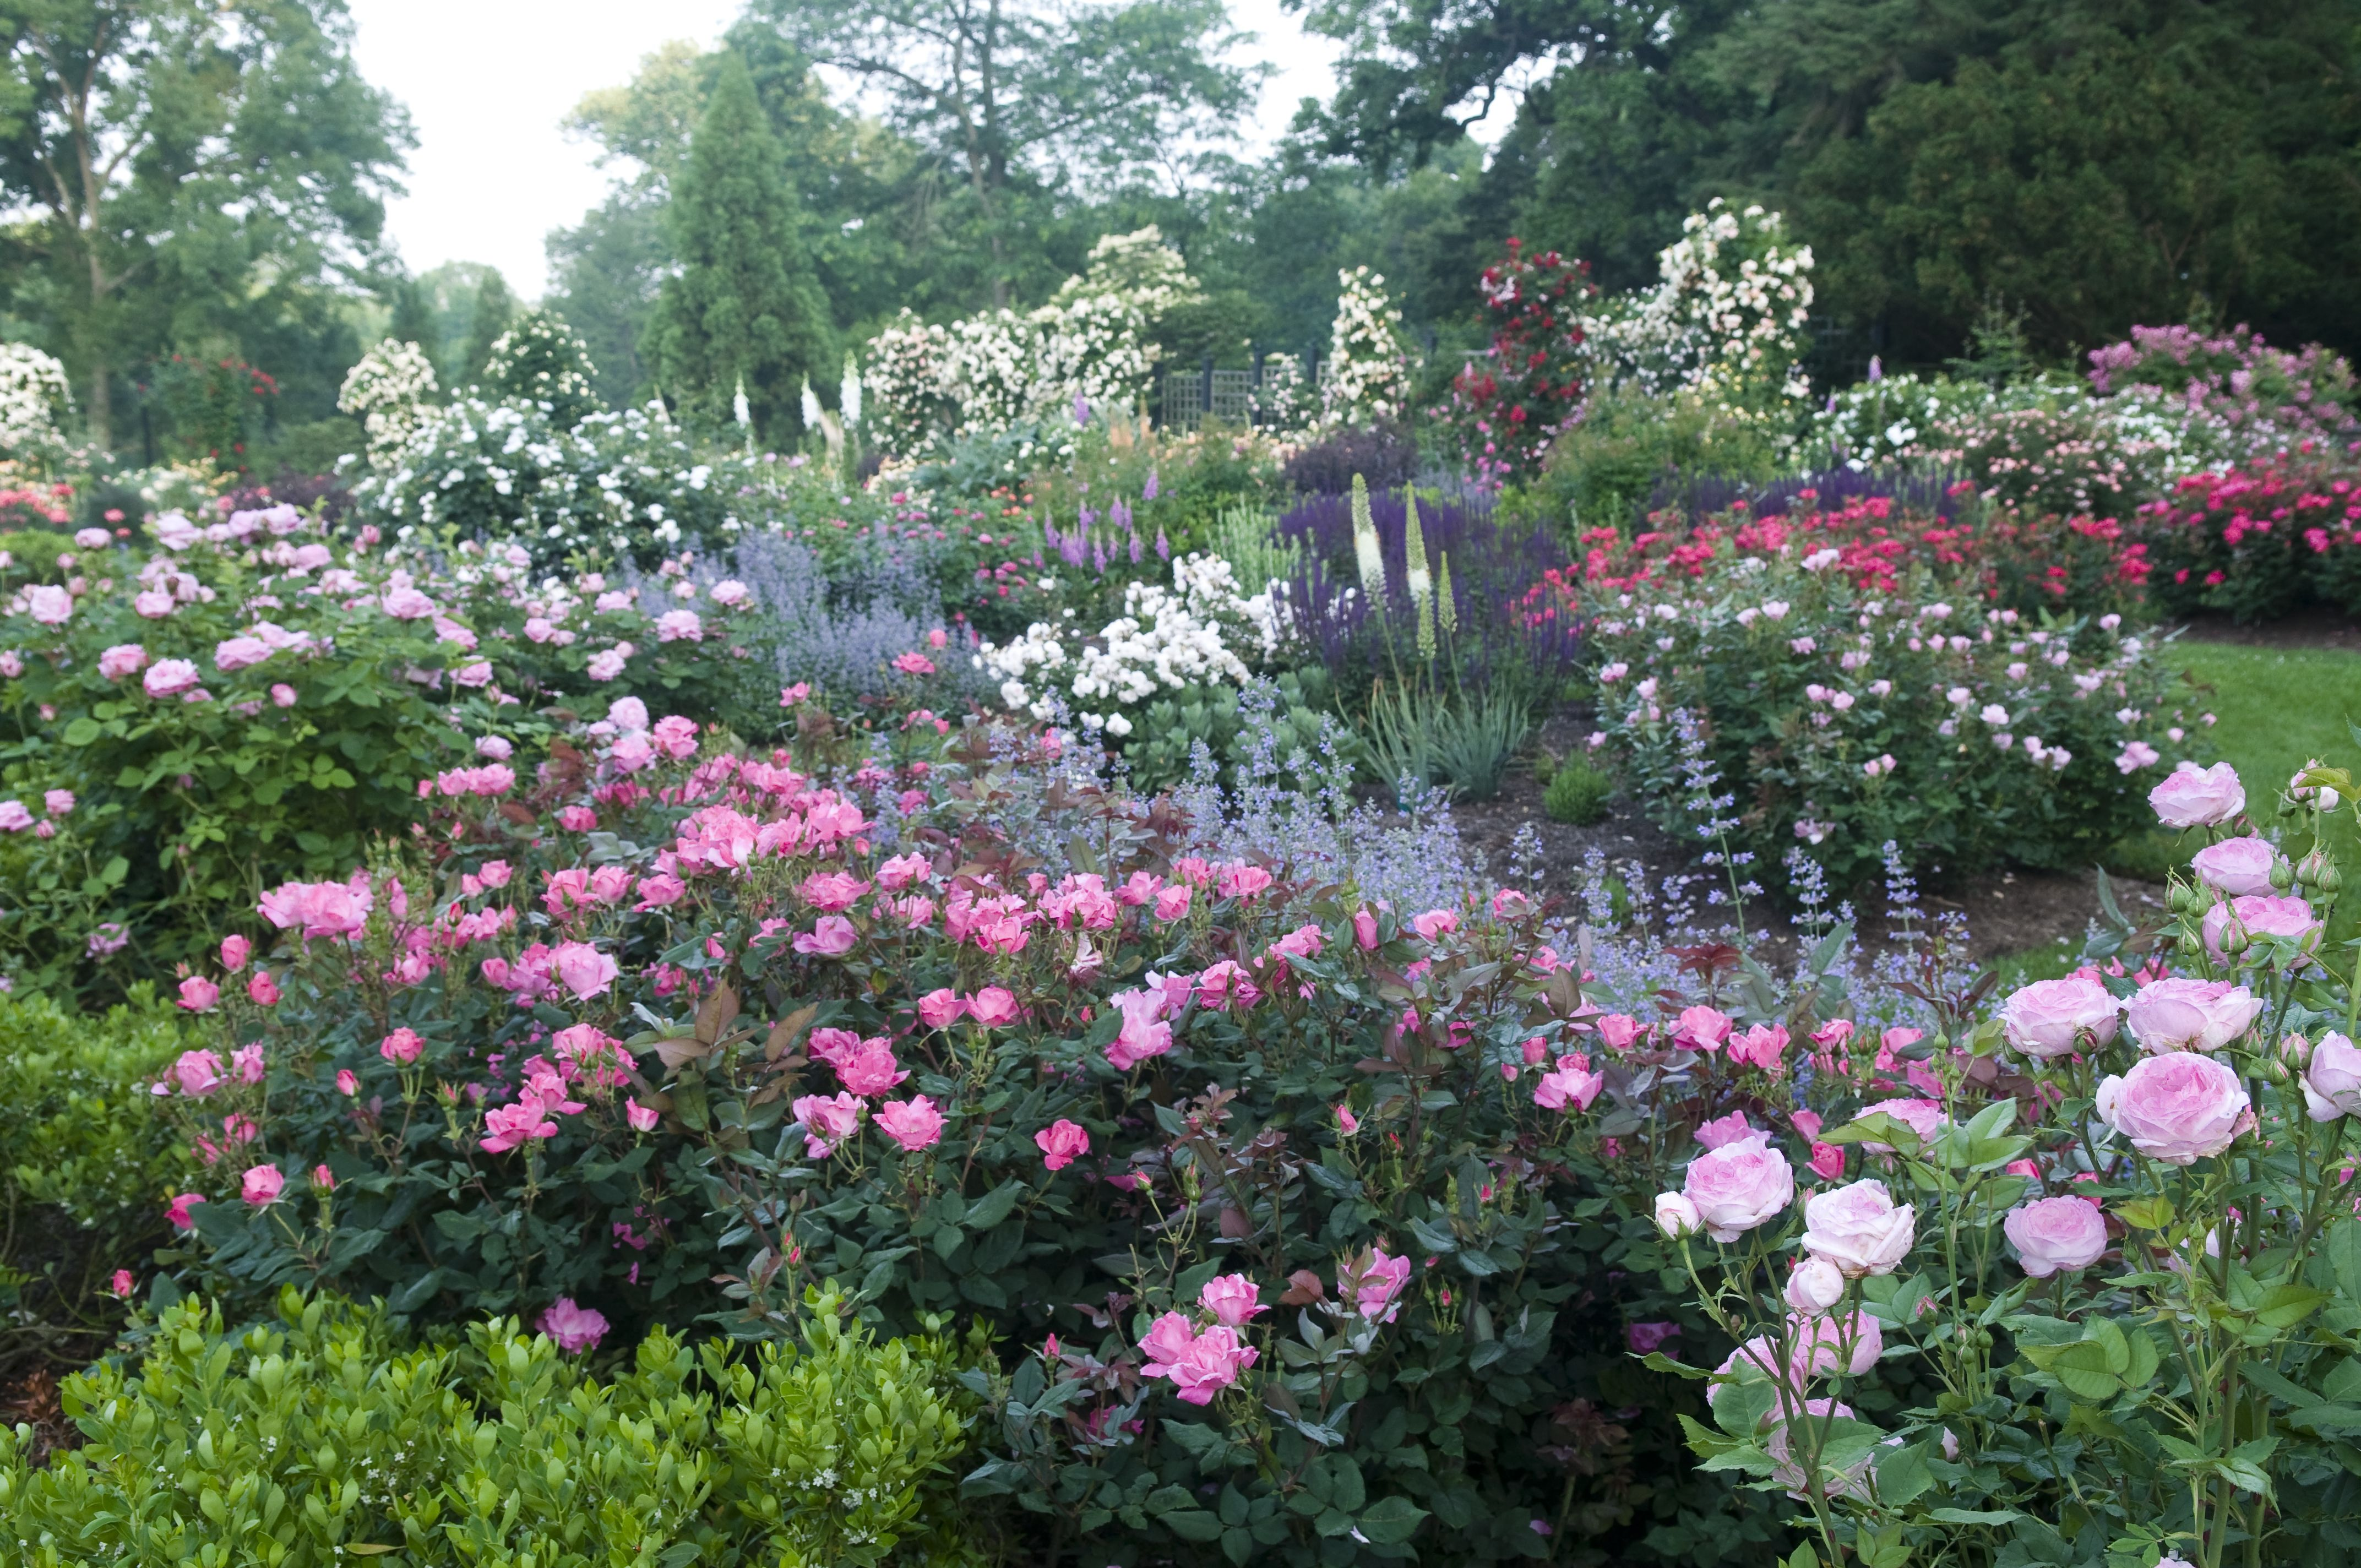 Gardening Advice For The Beginner To The Expert Rose Garden Landscape Knockout Roses Landscaping With Roses